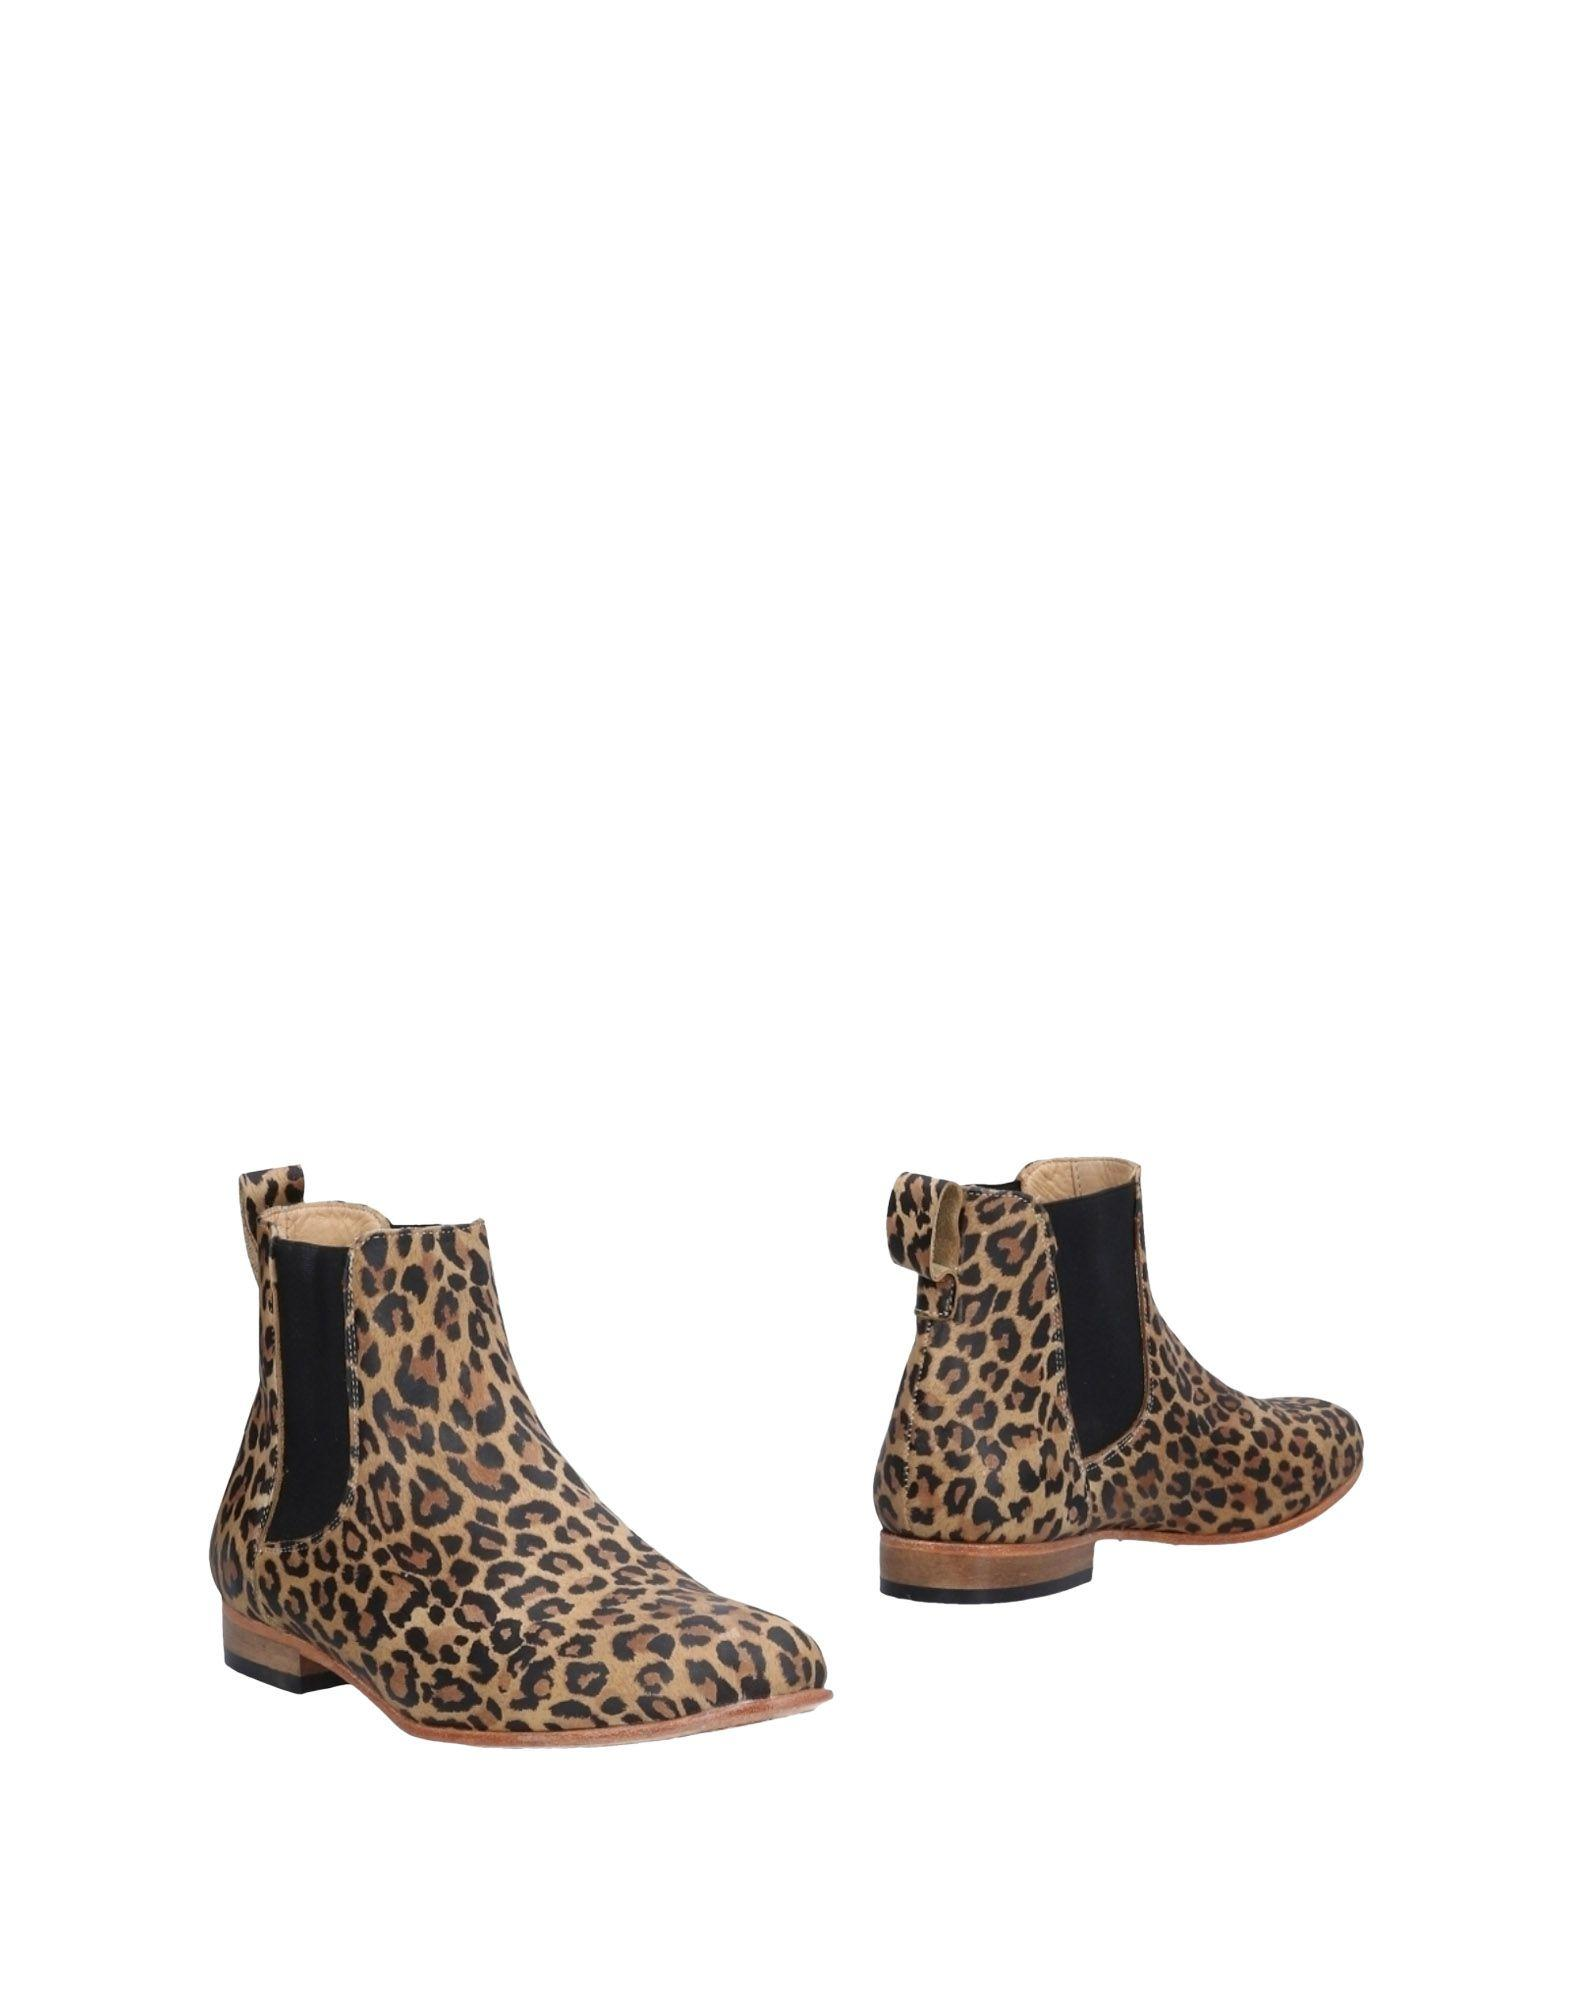 6356eccc9bd Dieppa Restrepo Ankle Boots In Sand